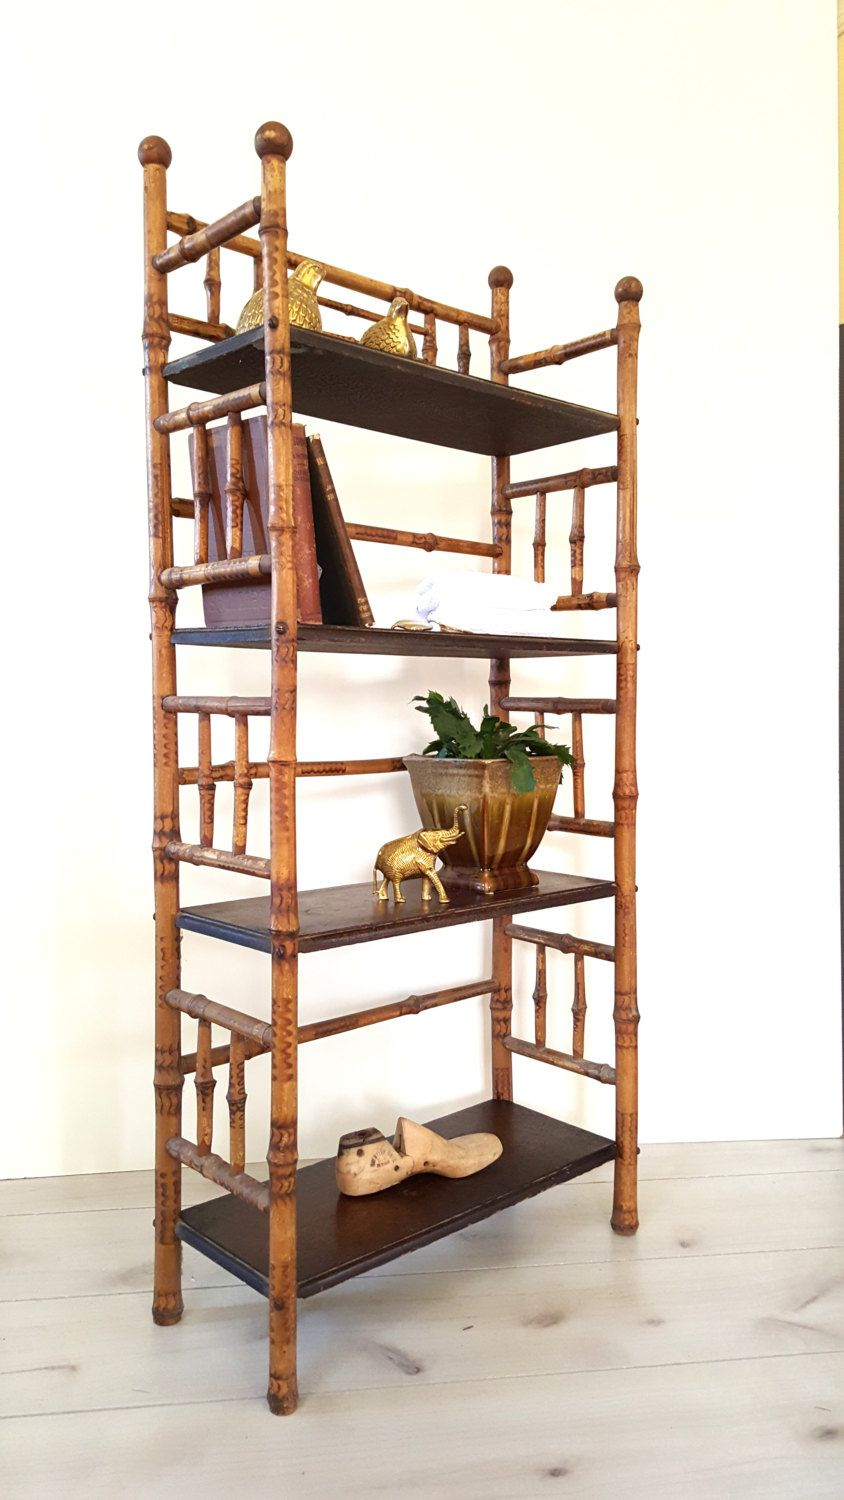 Antique Bamboo Bookshelf/ Bookcase / Etagere / 4 Tier Shelving / Bookshelves ~ Antique Victorian Bamboo Bookcase by LUCKYHOMEFINDS on Etsy